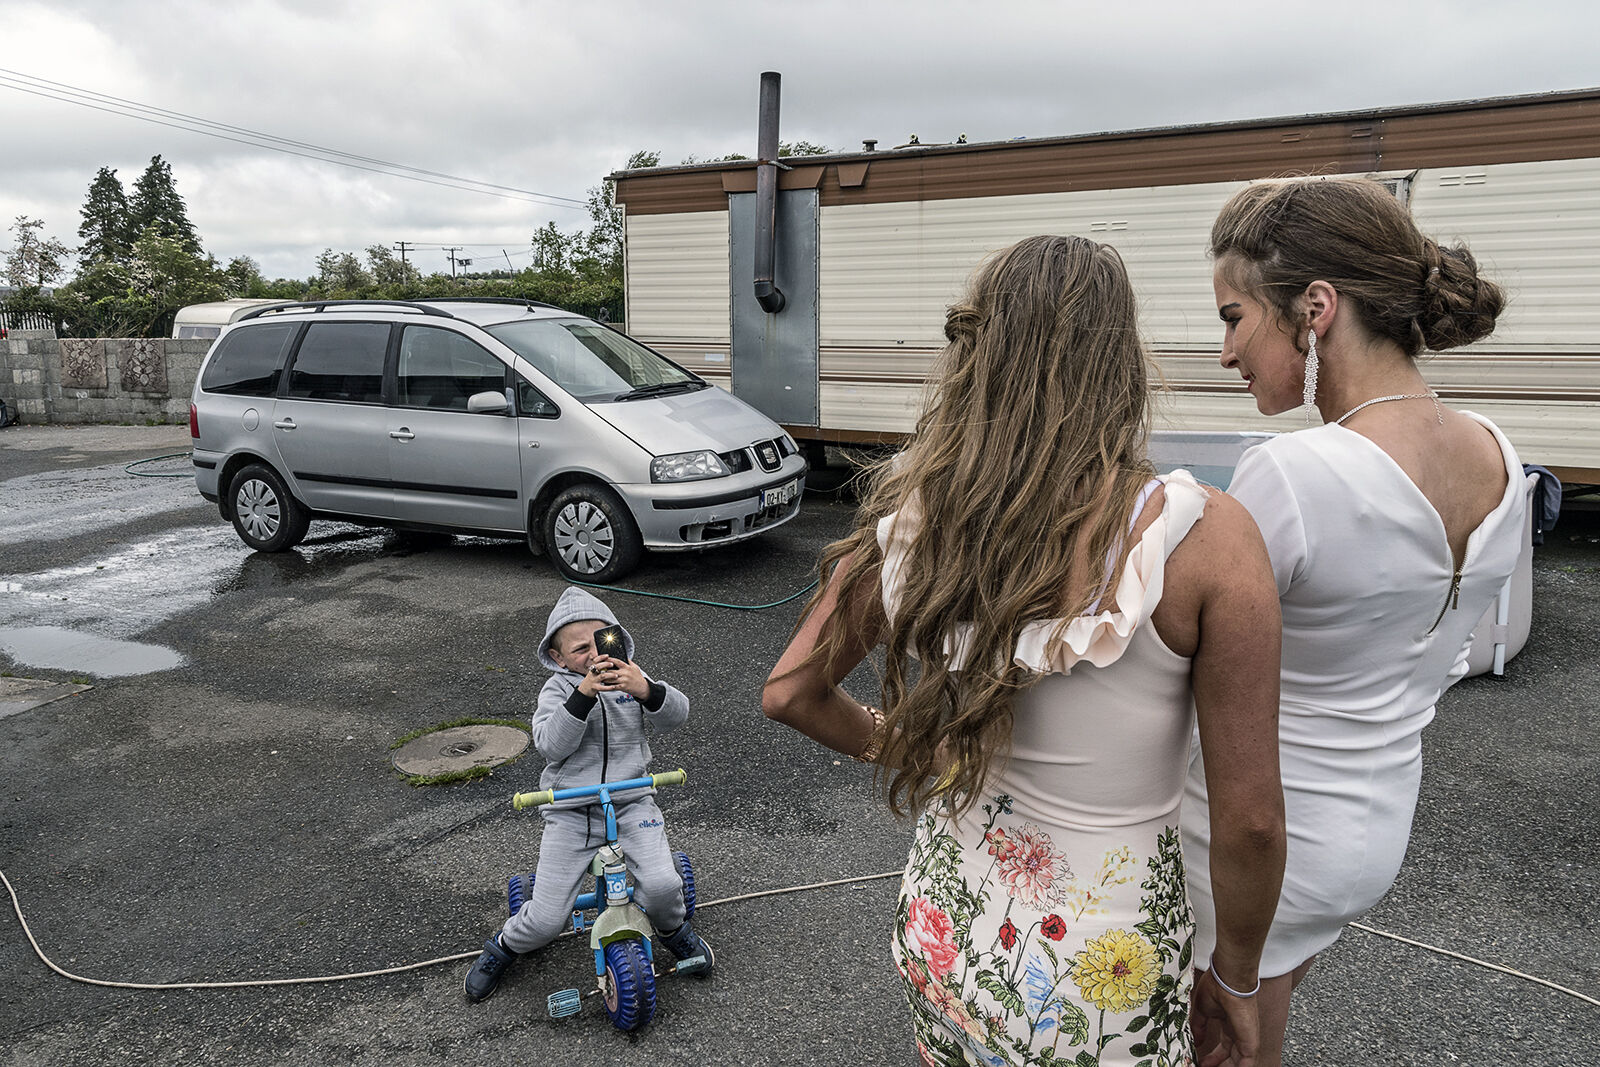 Kevin Takes Pictures of His Sisters, Tipperary, Ireland 2019